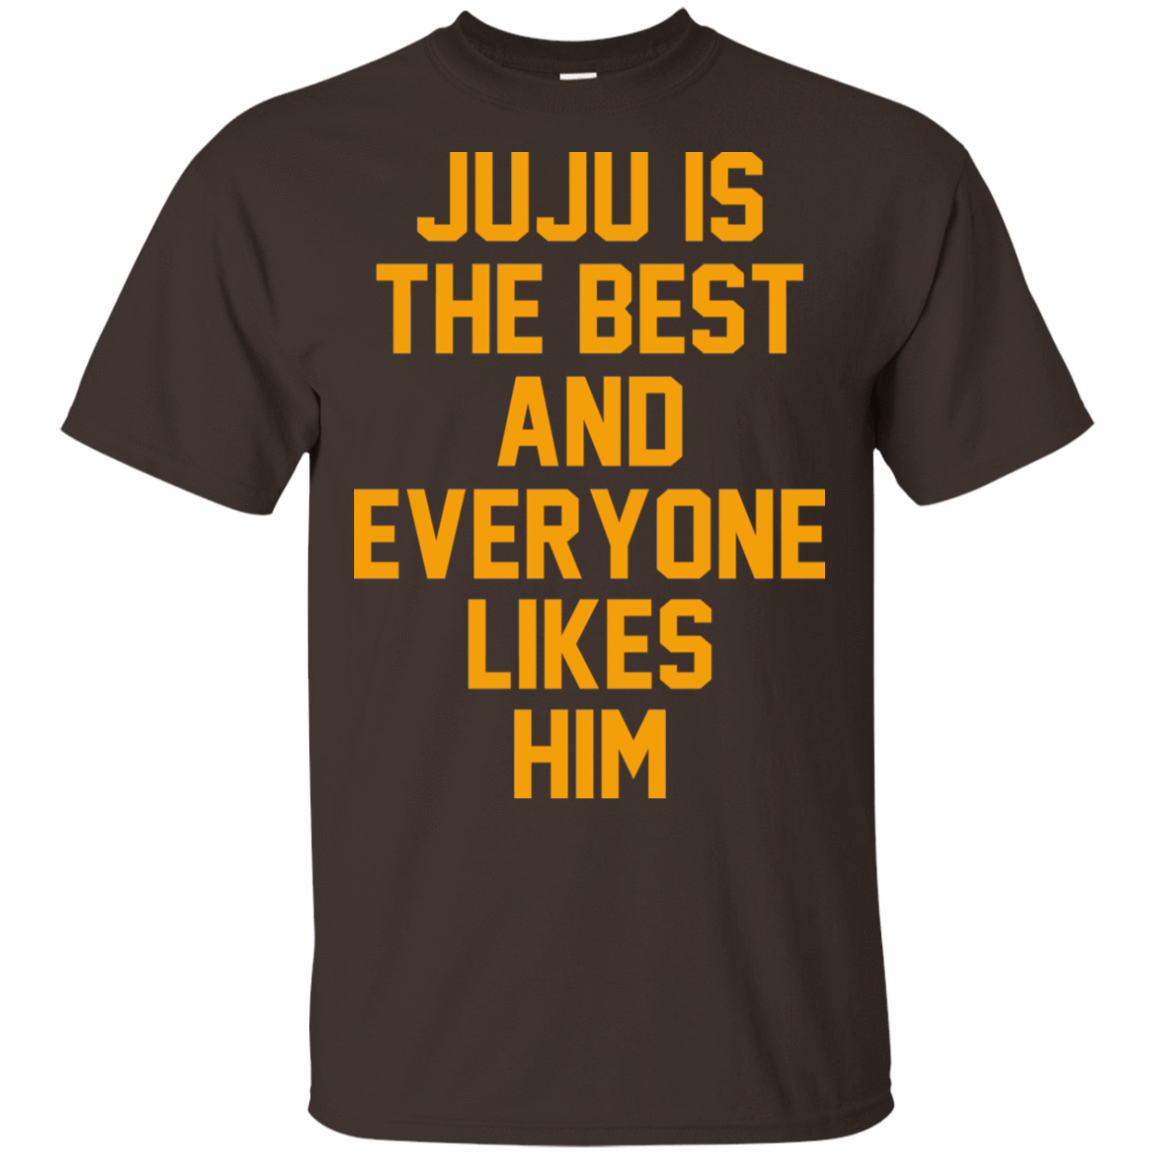 Ju Ju Is The Best And Everyone Likes Him 22-2283-72993933-12087 - Tee Ript